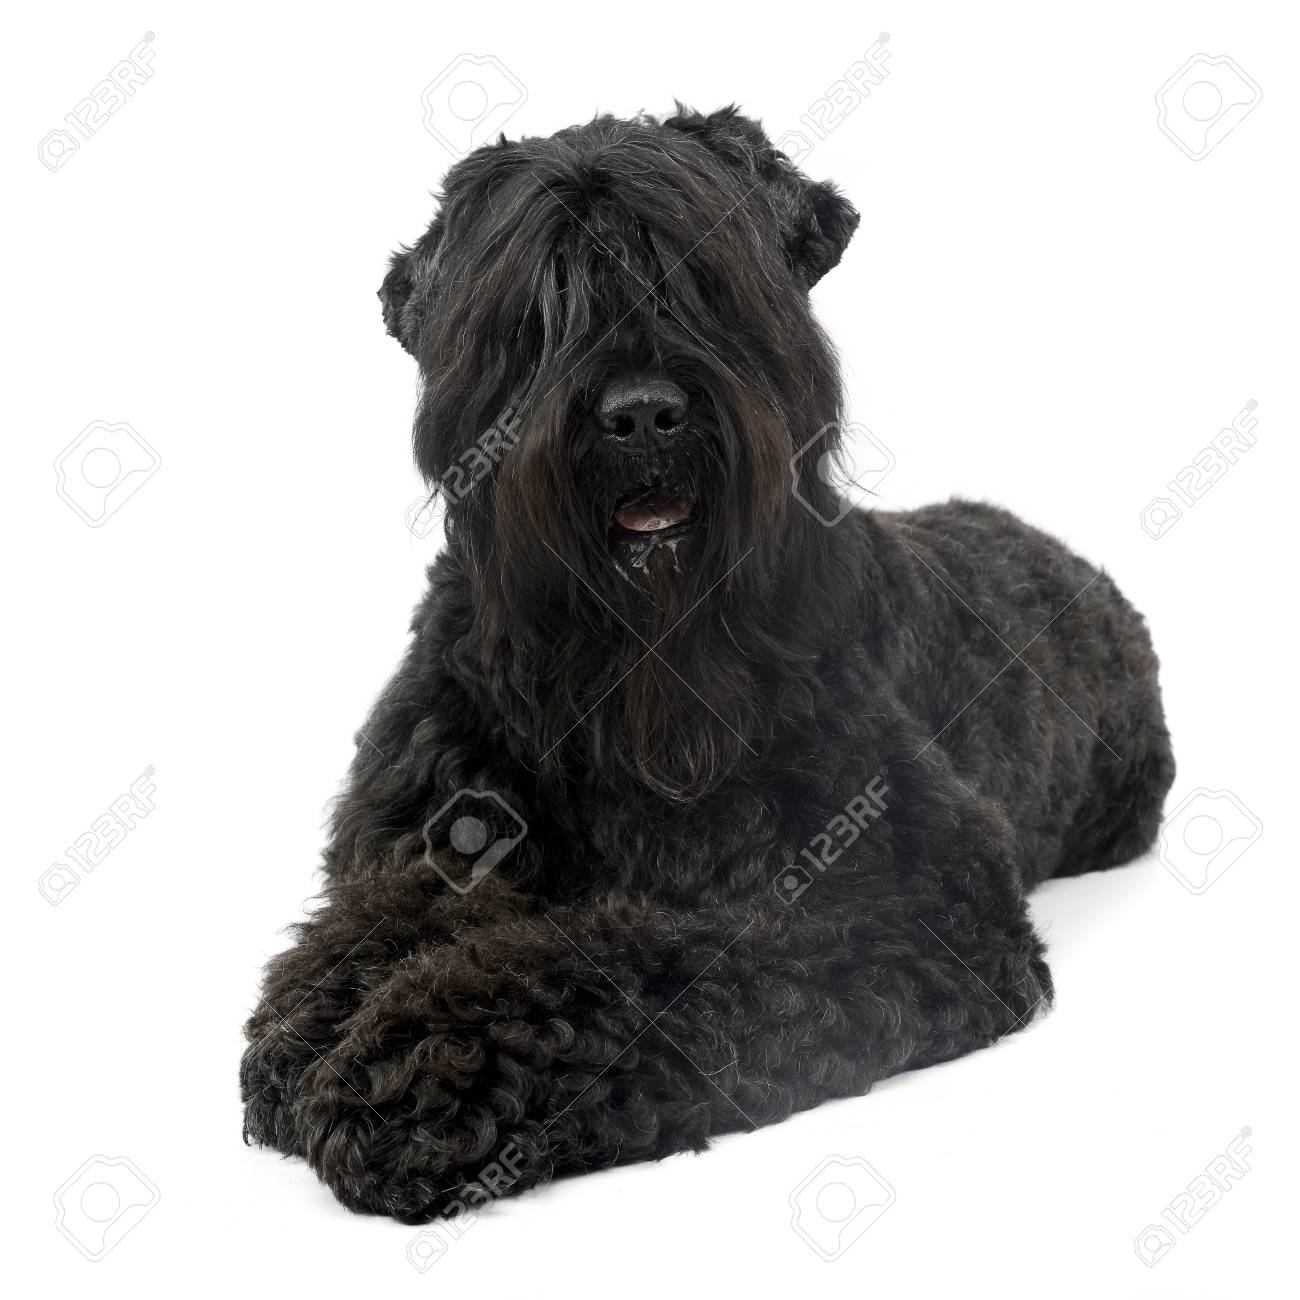 Studio Shot Of An Adorable Black Russian Terrier Lying On White